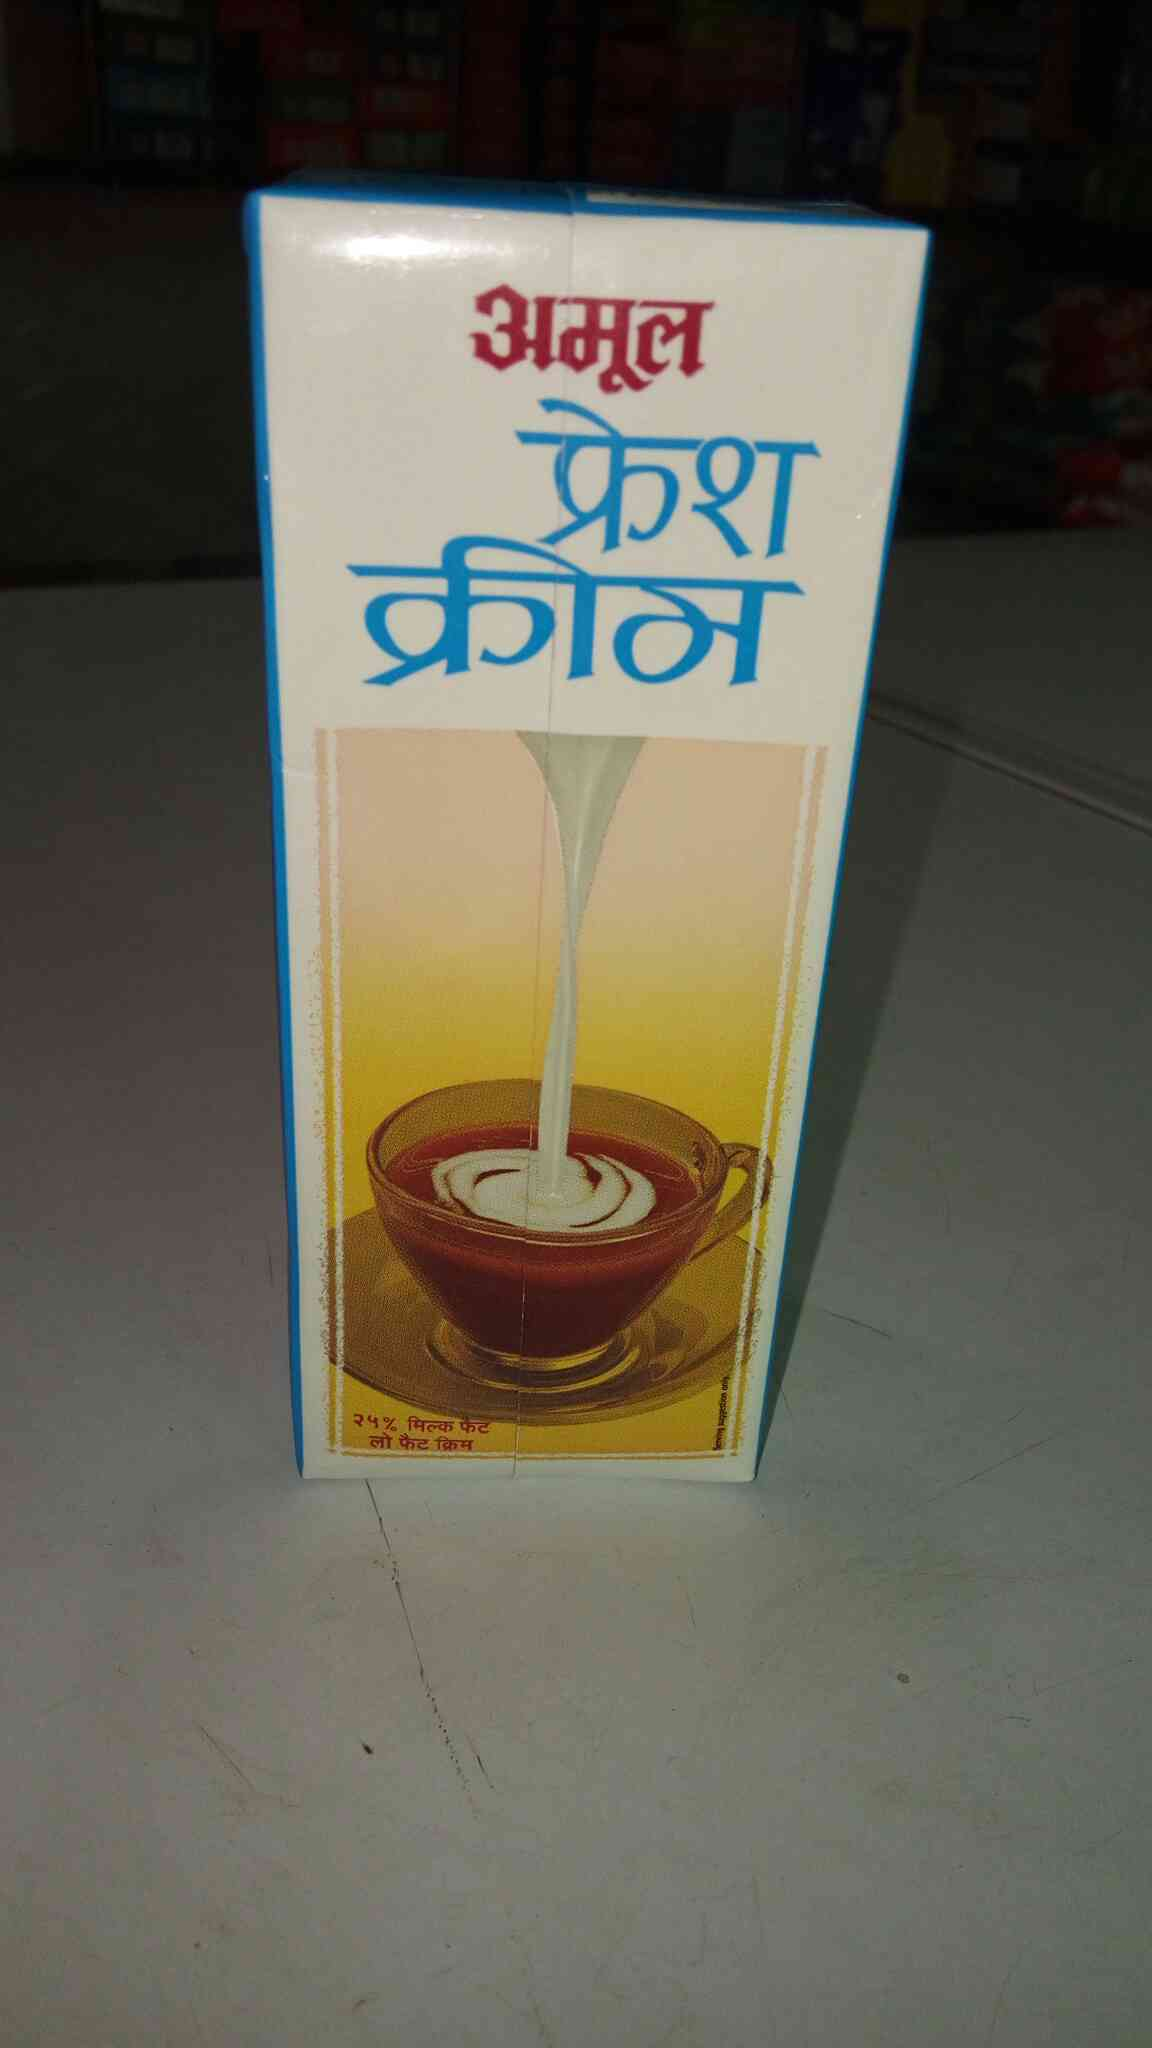 WE ARE SERVING YOU A BEST QUALITY OF AMUL FRESH CREAM FROM GOEL GENERAL STORE NEAR NEHRU VIHAR